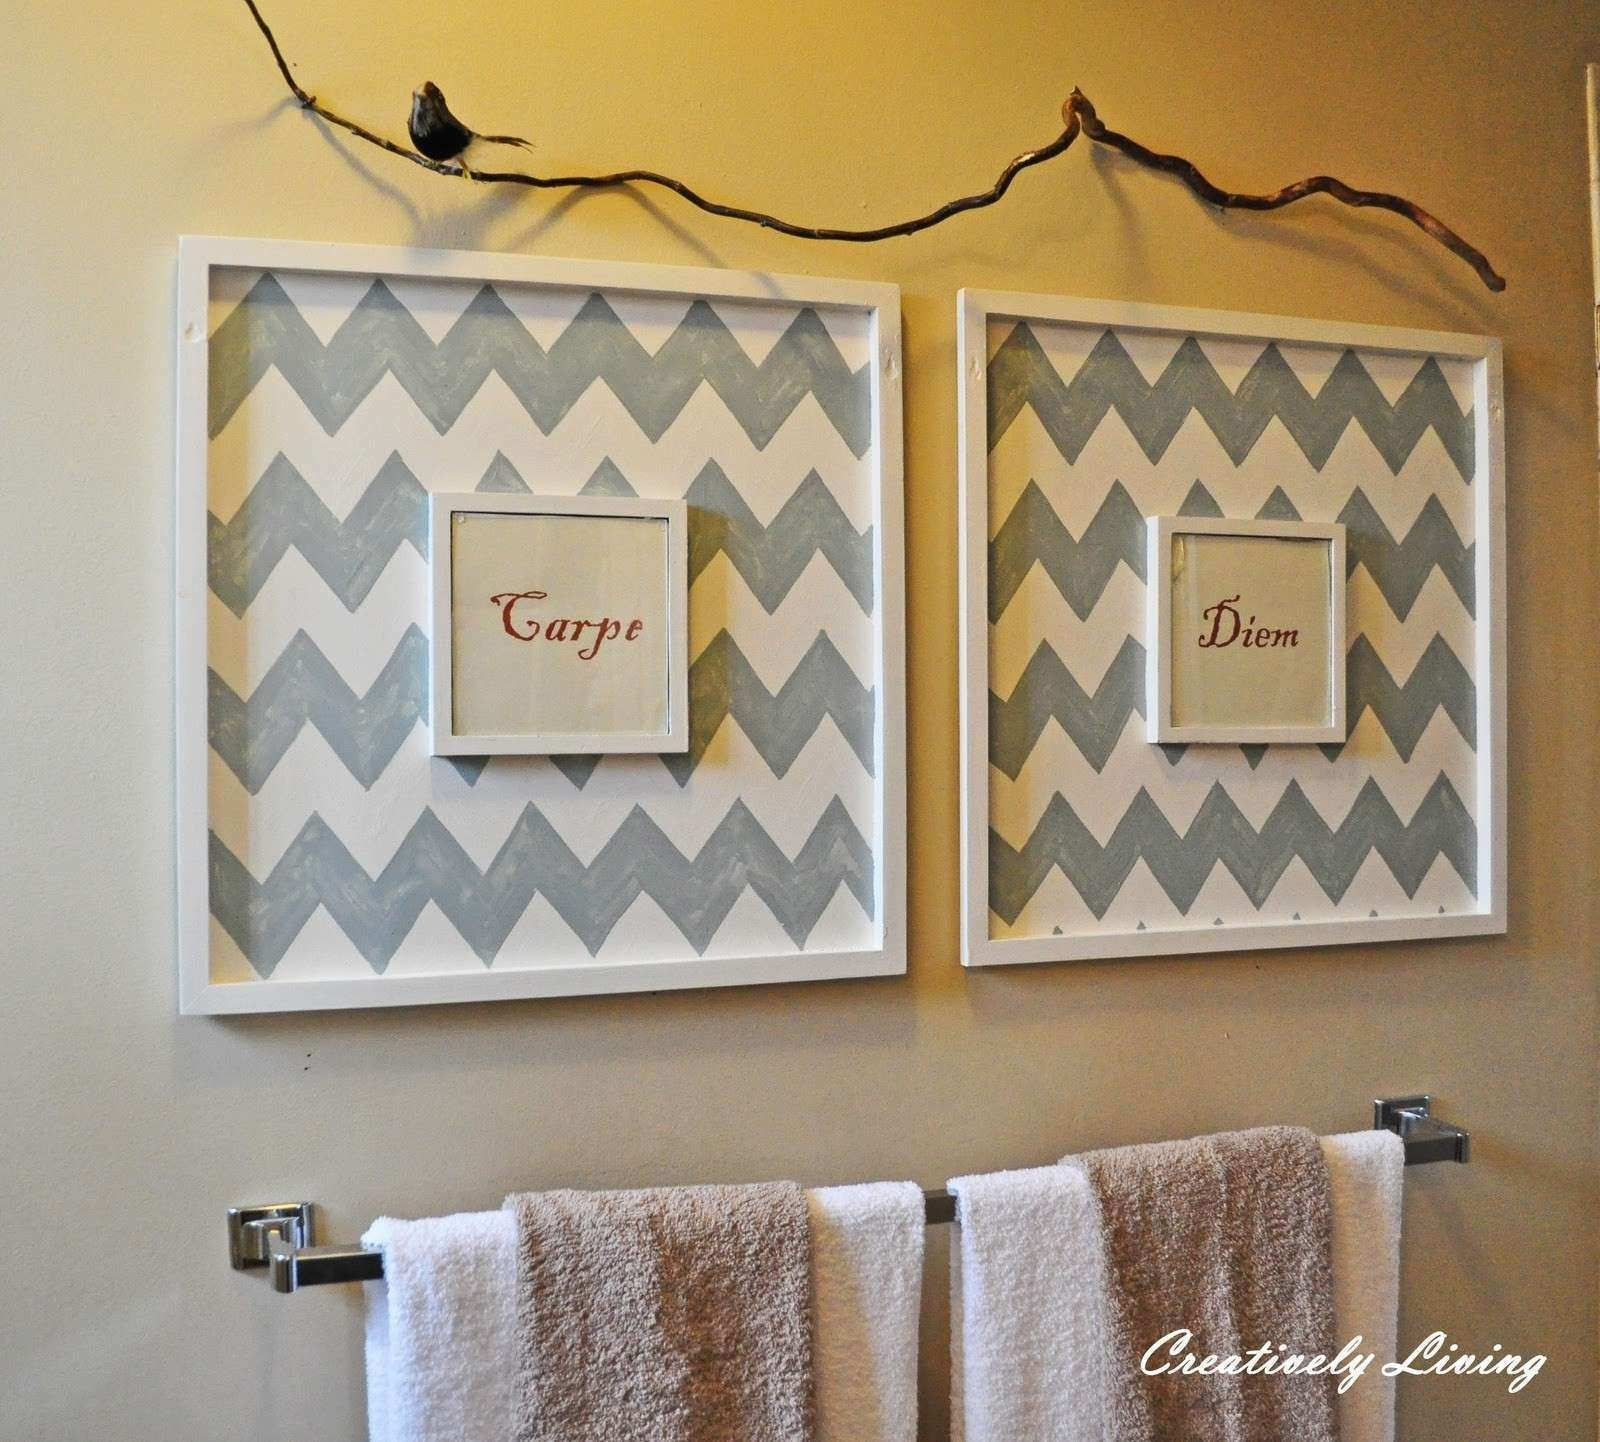 Bathroom Canvas Wall Art Awesome Bathroom Wall Art Creatively Living for Bathroom Canvas Wall Art (Image 4 of 20)